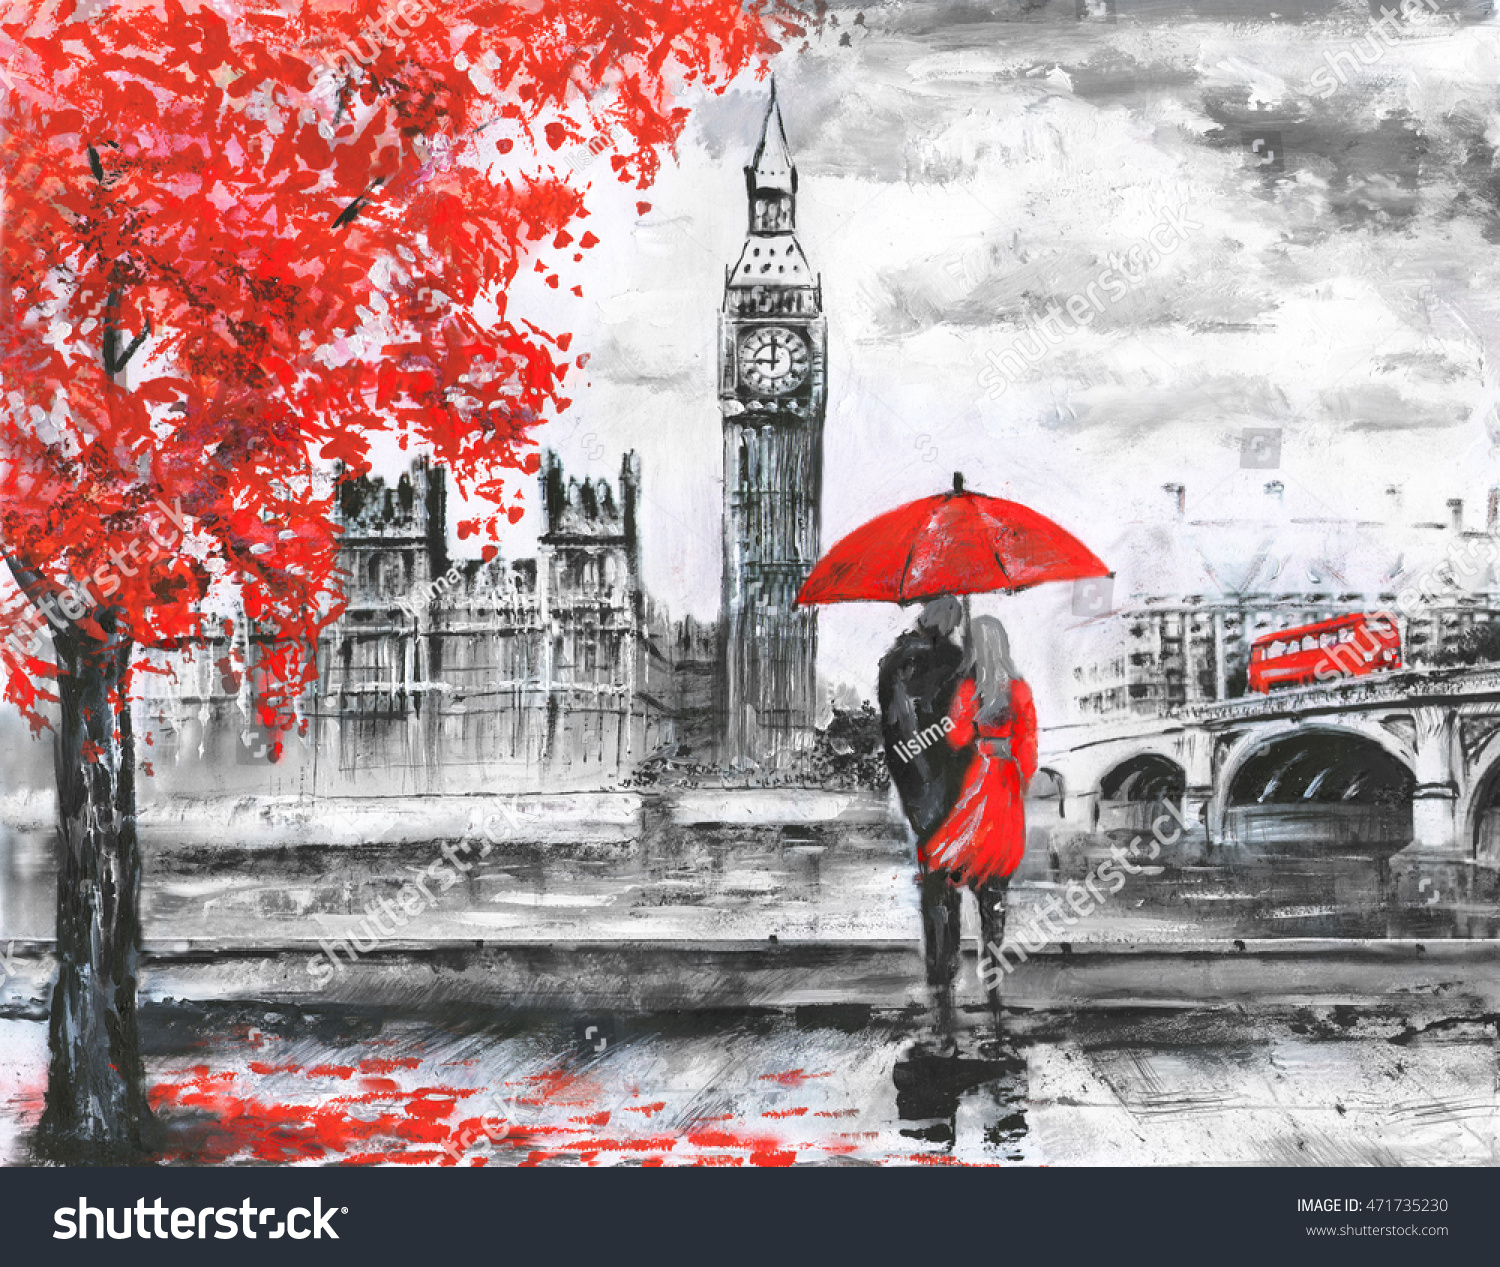 Oil painting on canvas street view stock illustration for Painting red umbrella